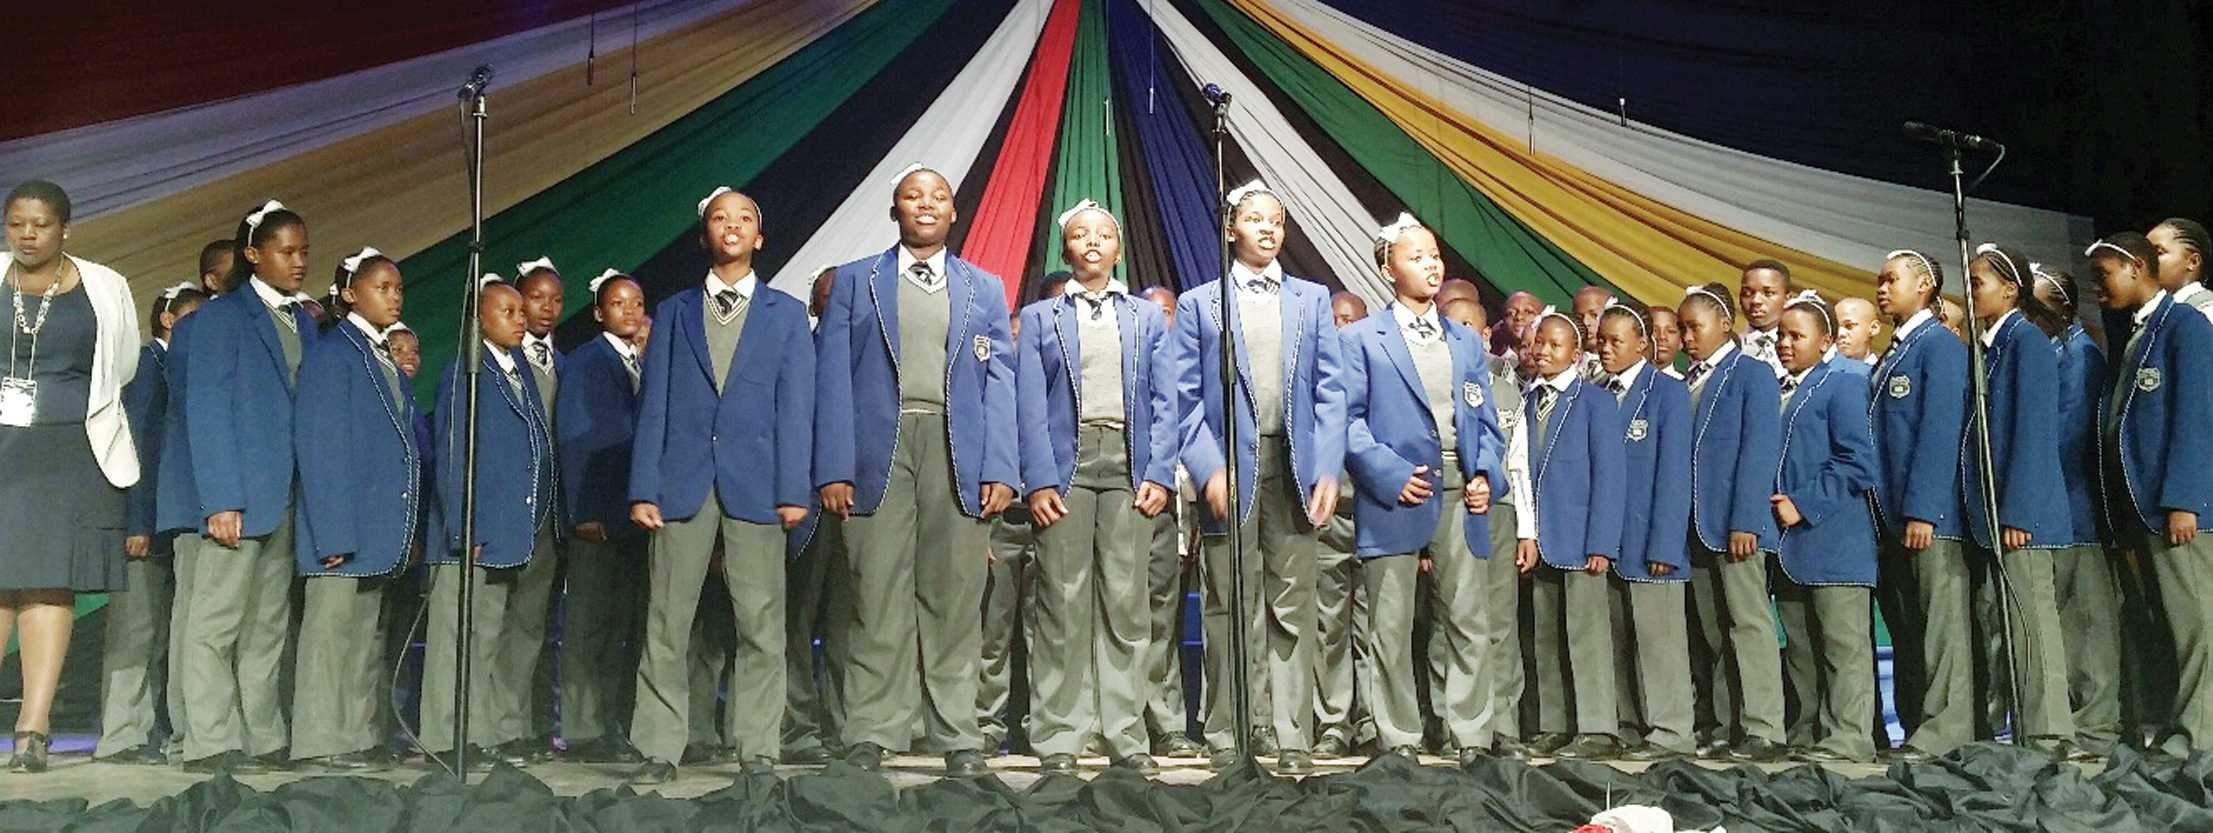 Bosa Bosele Primary School was amongst the schools which participated at the national South African Schools Choral Eisteddfod (SASCE) competitions.